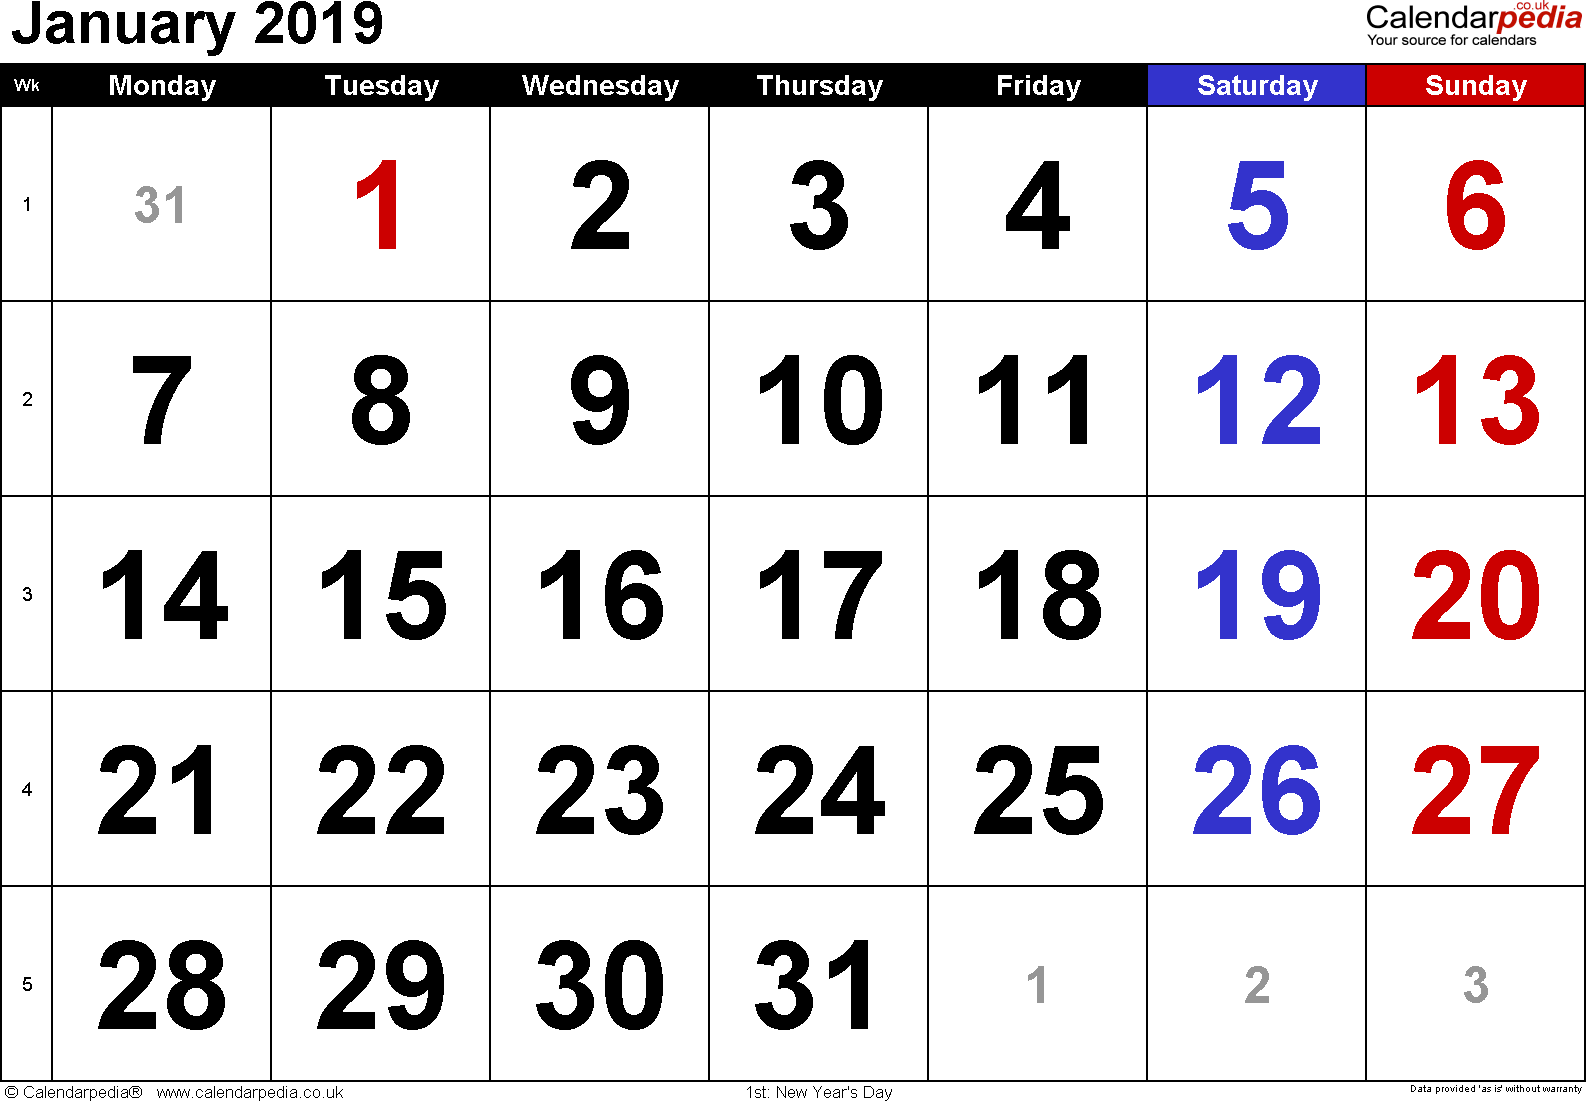 Calendar January 2019, landscape orientation, large numerals, 1 page, with UK bank holidays and week numbers